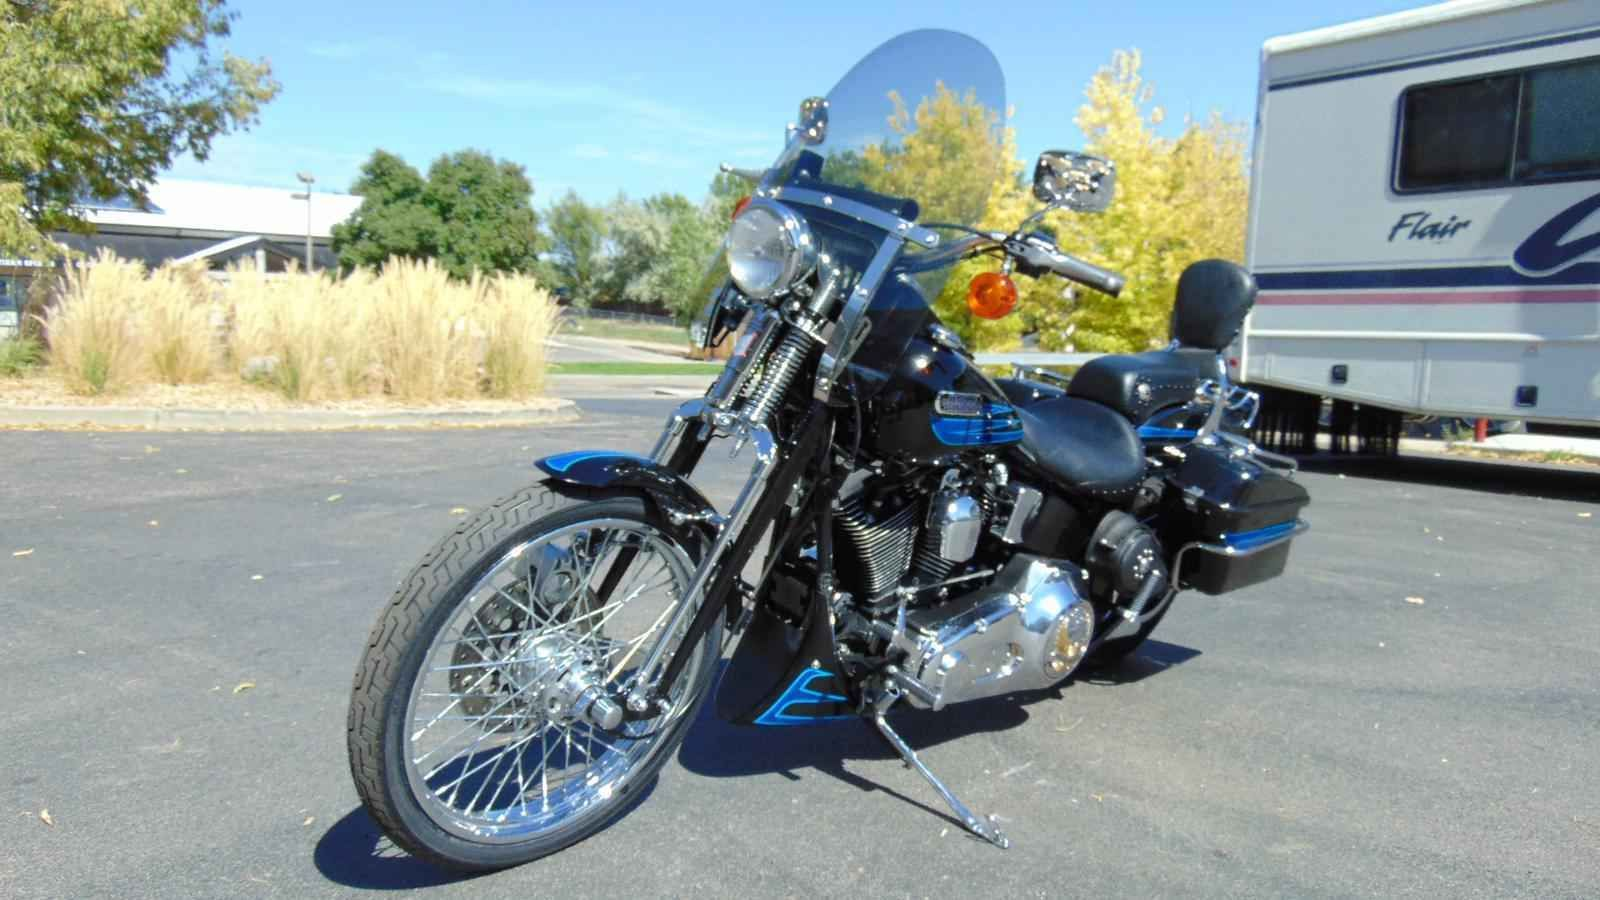 1995 Harley Davidson Fxsts B Motorcycles For Sale Harley Davidson Motorcycle [ 900 x 1600 Pixel ]